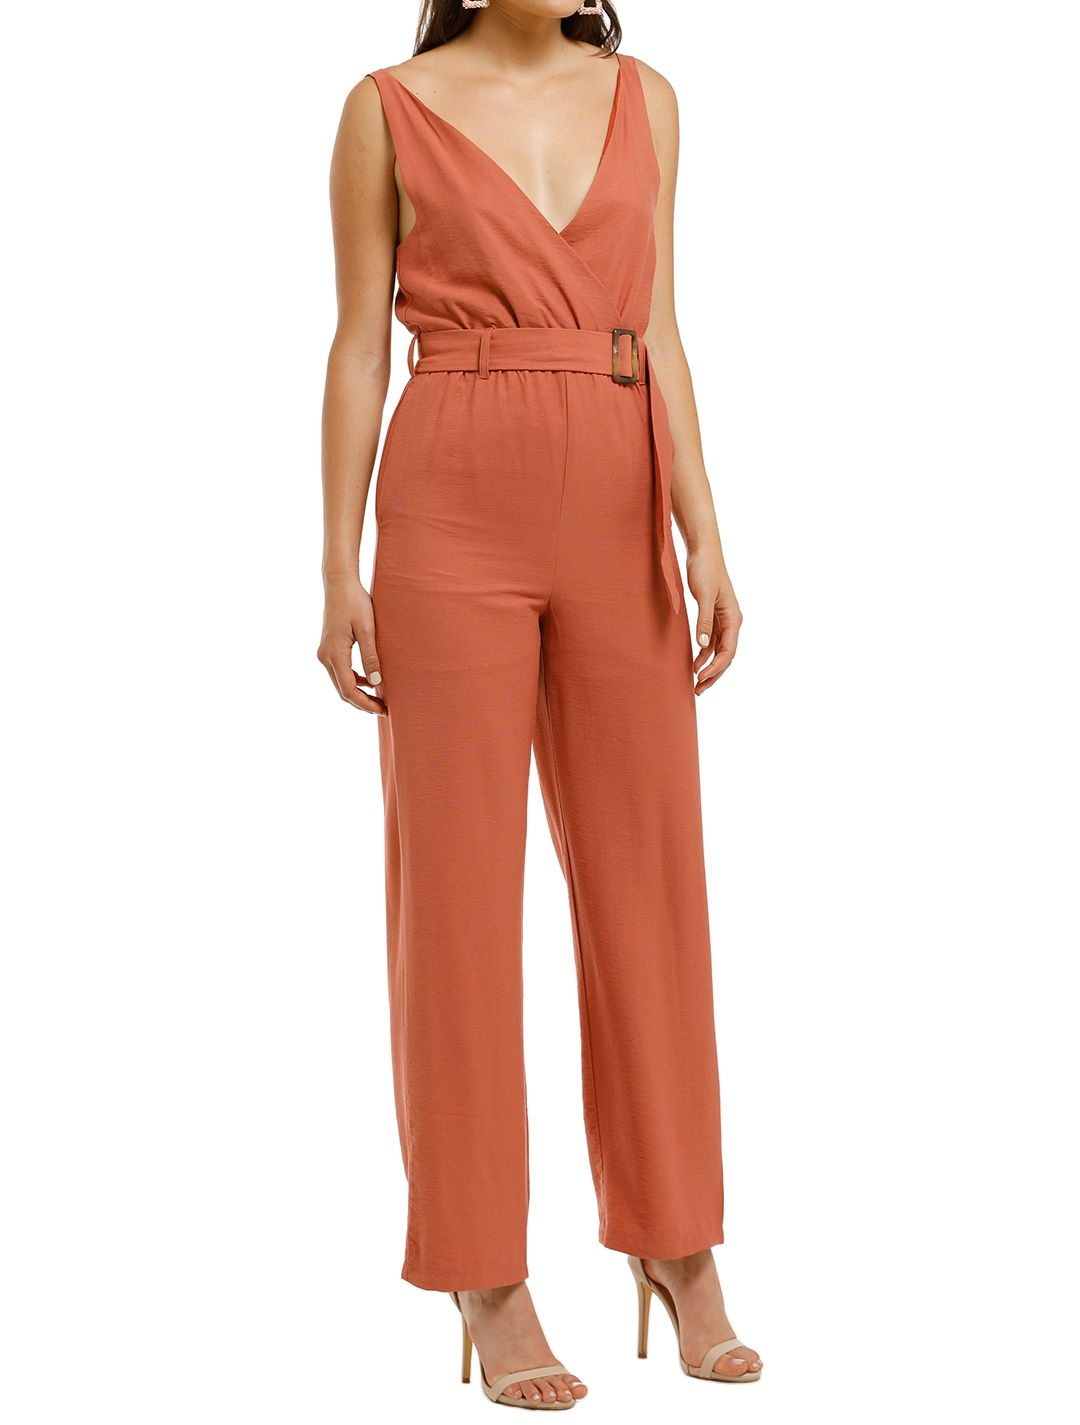 Wish-Frida-Jumpsuit-Terracotta-Side